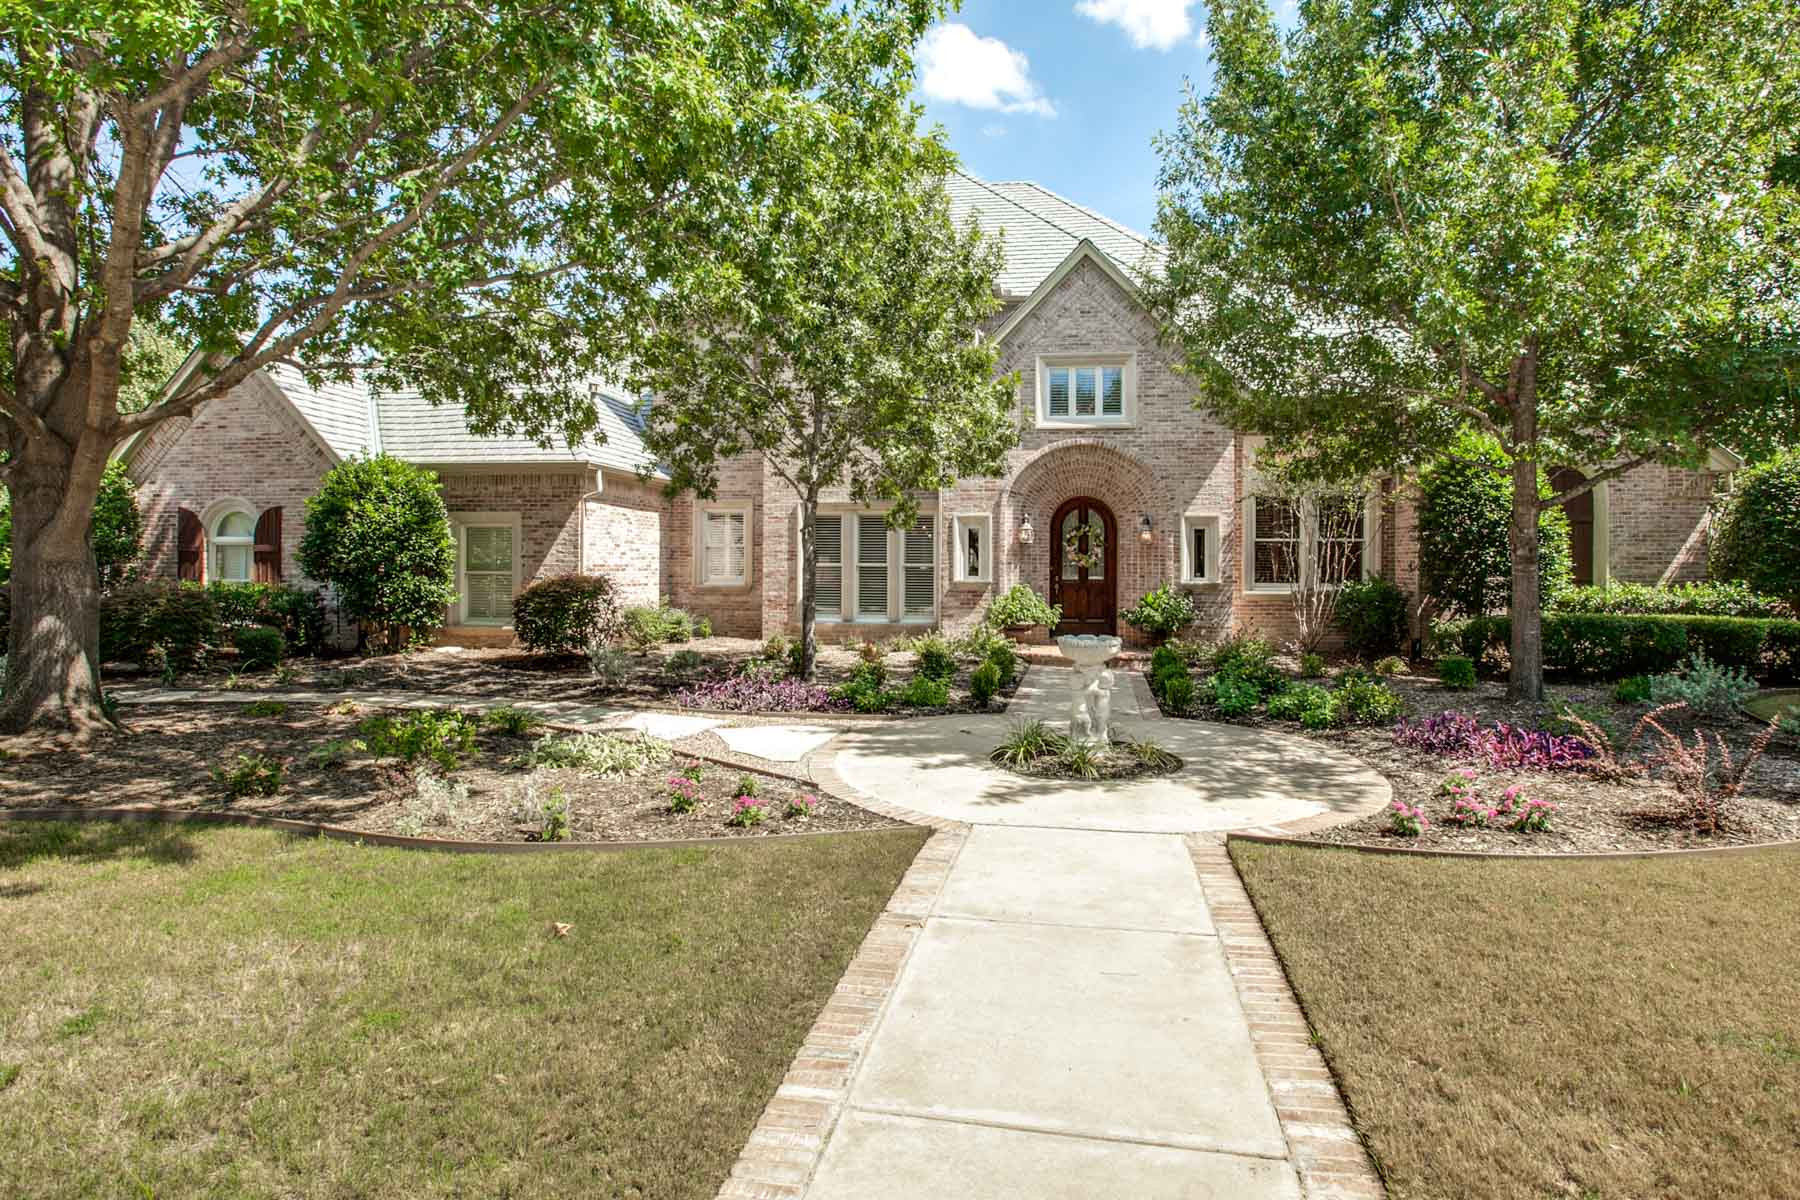 Villa per Vendita alle ore Meticulously Maintained and Updated Home, Mira Vista 6650 Laurel Valley Dr. Fort Worth, Texas, 76132 Stati Uniti